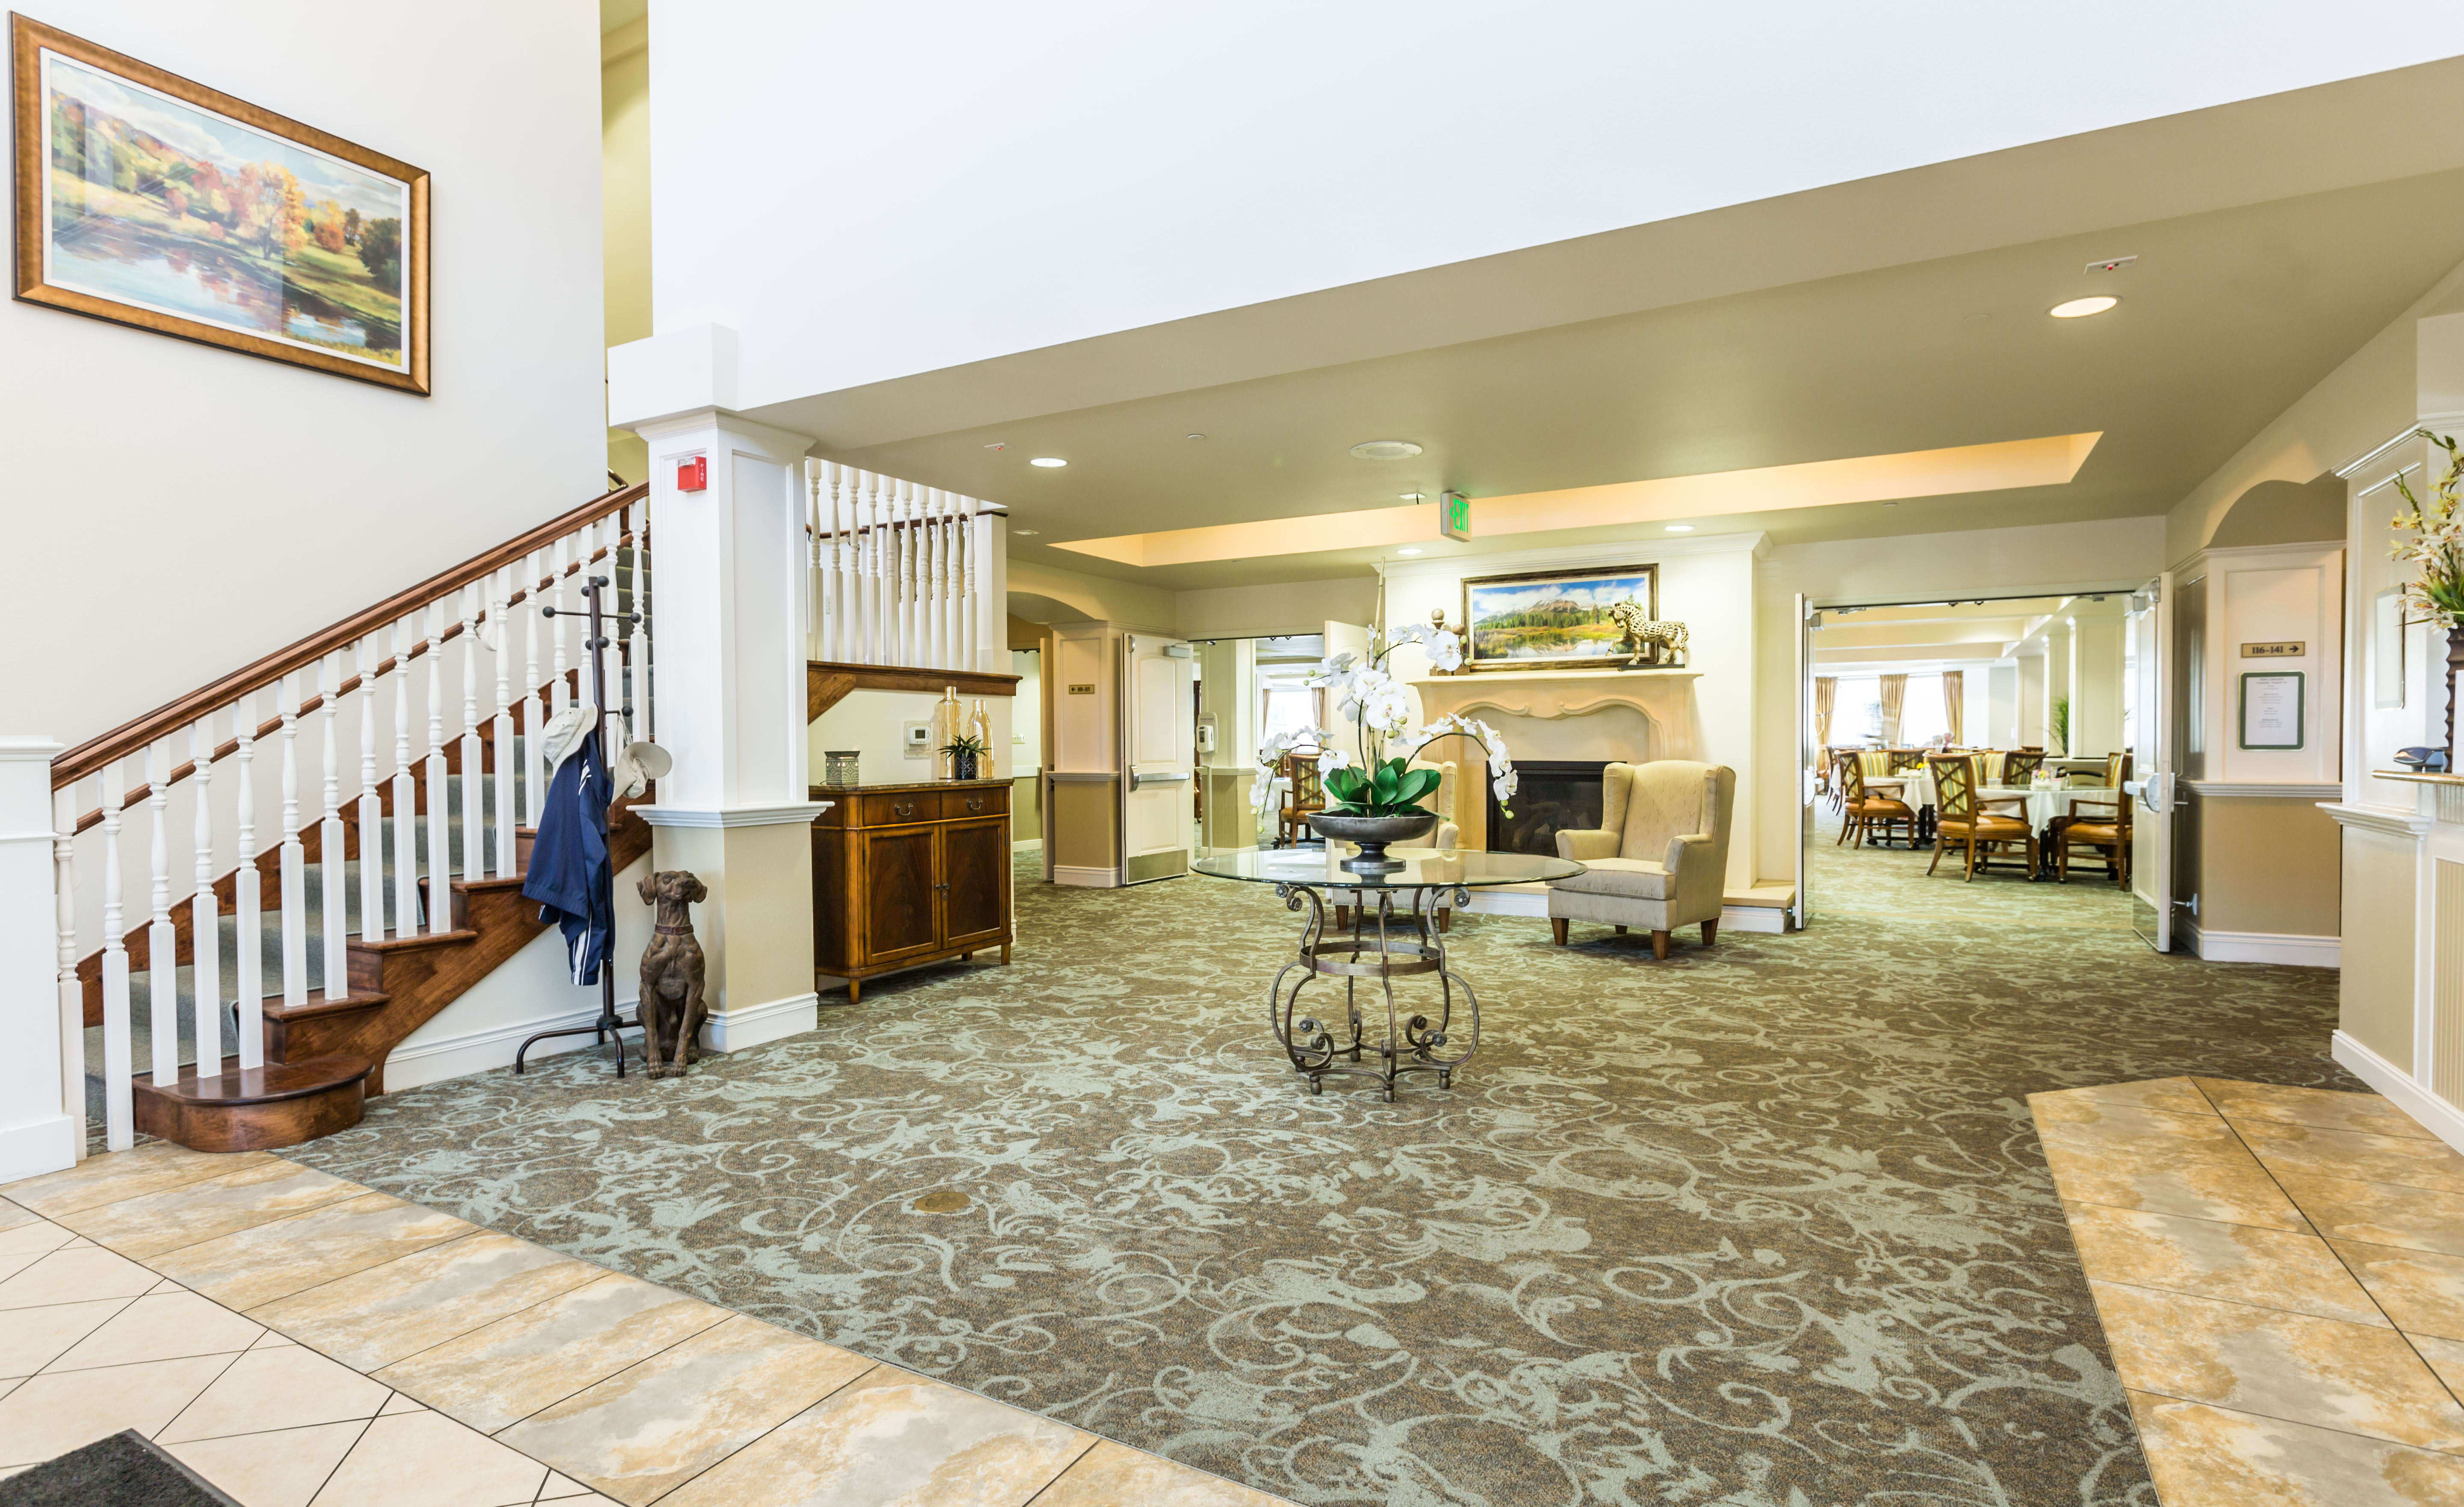 Entrance and Grand Foyer at Lakeview Senior Living